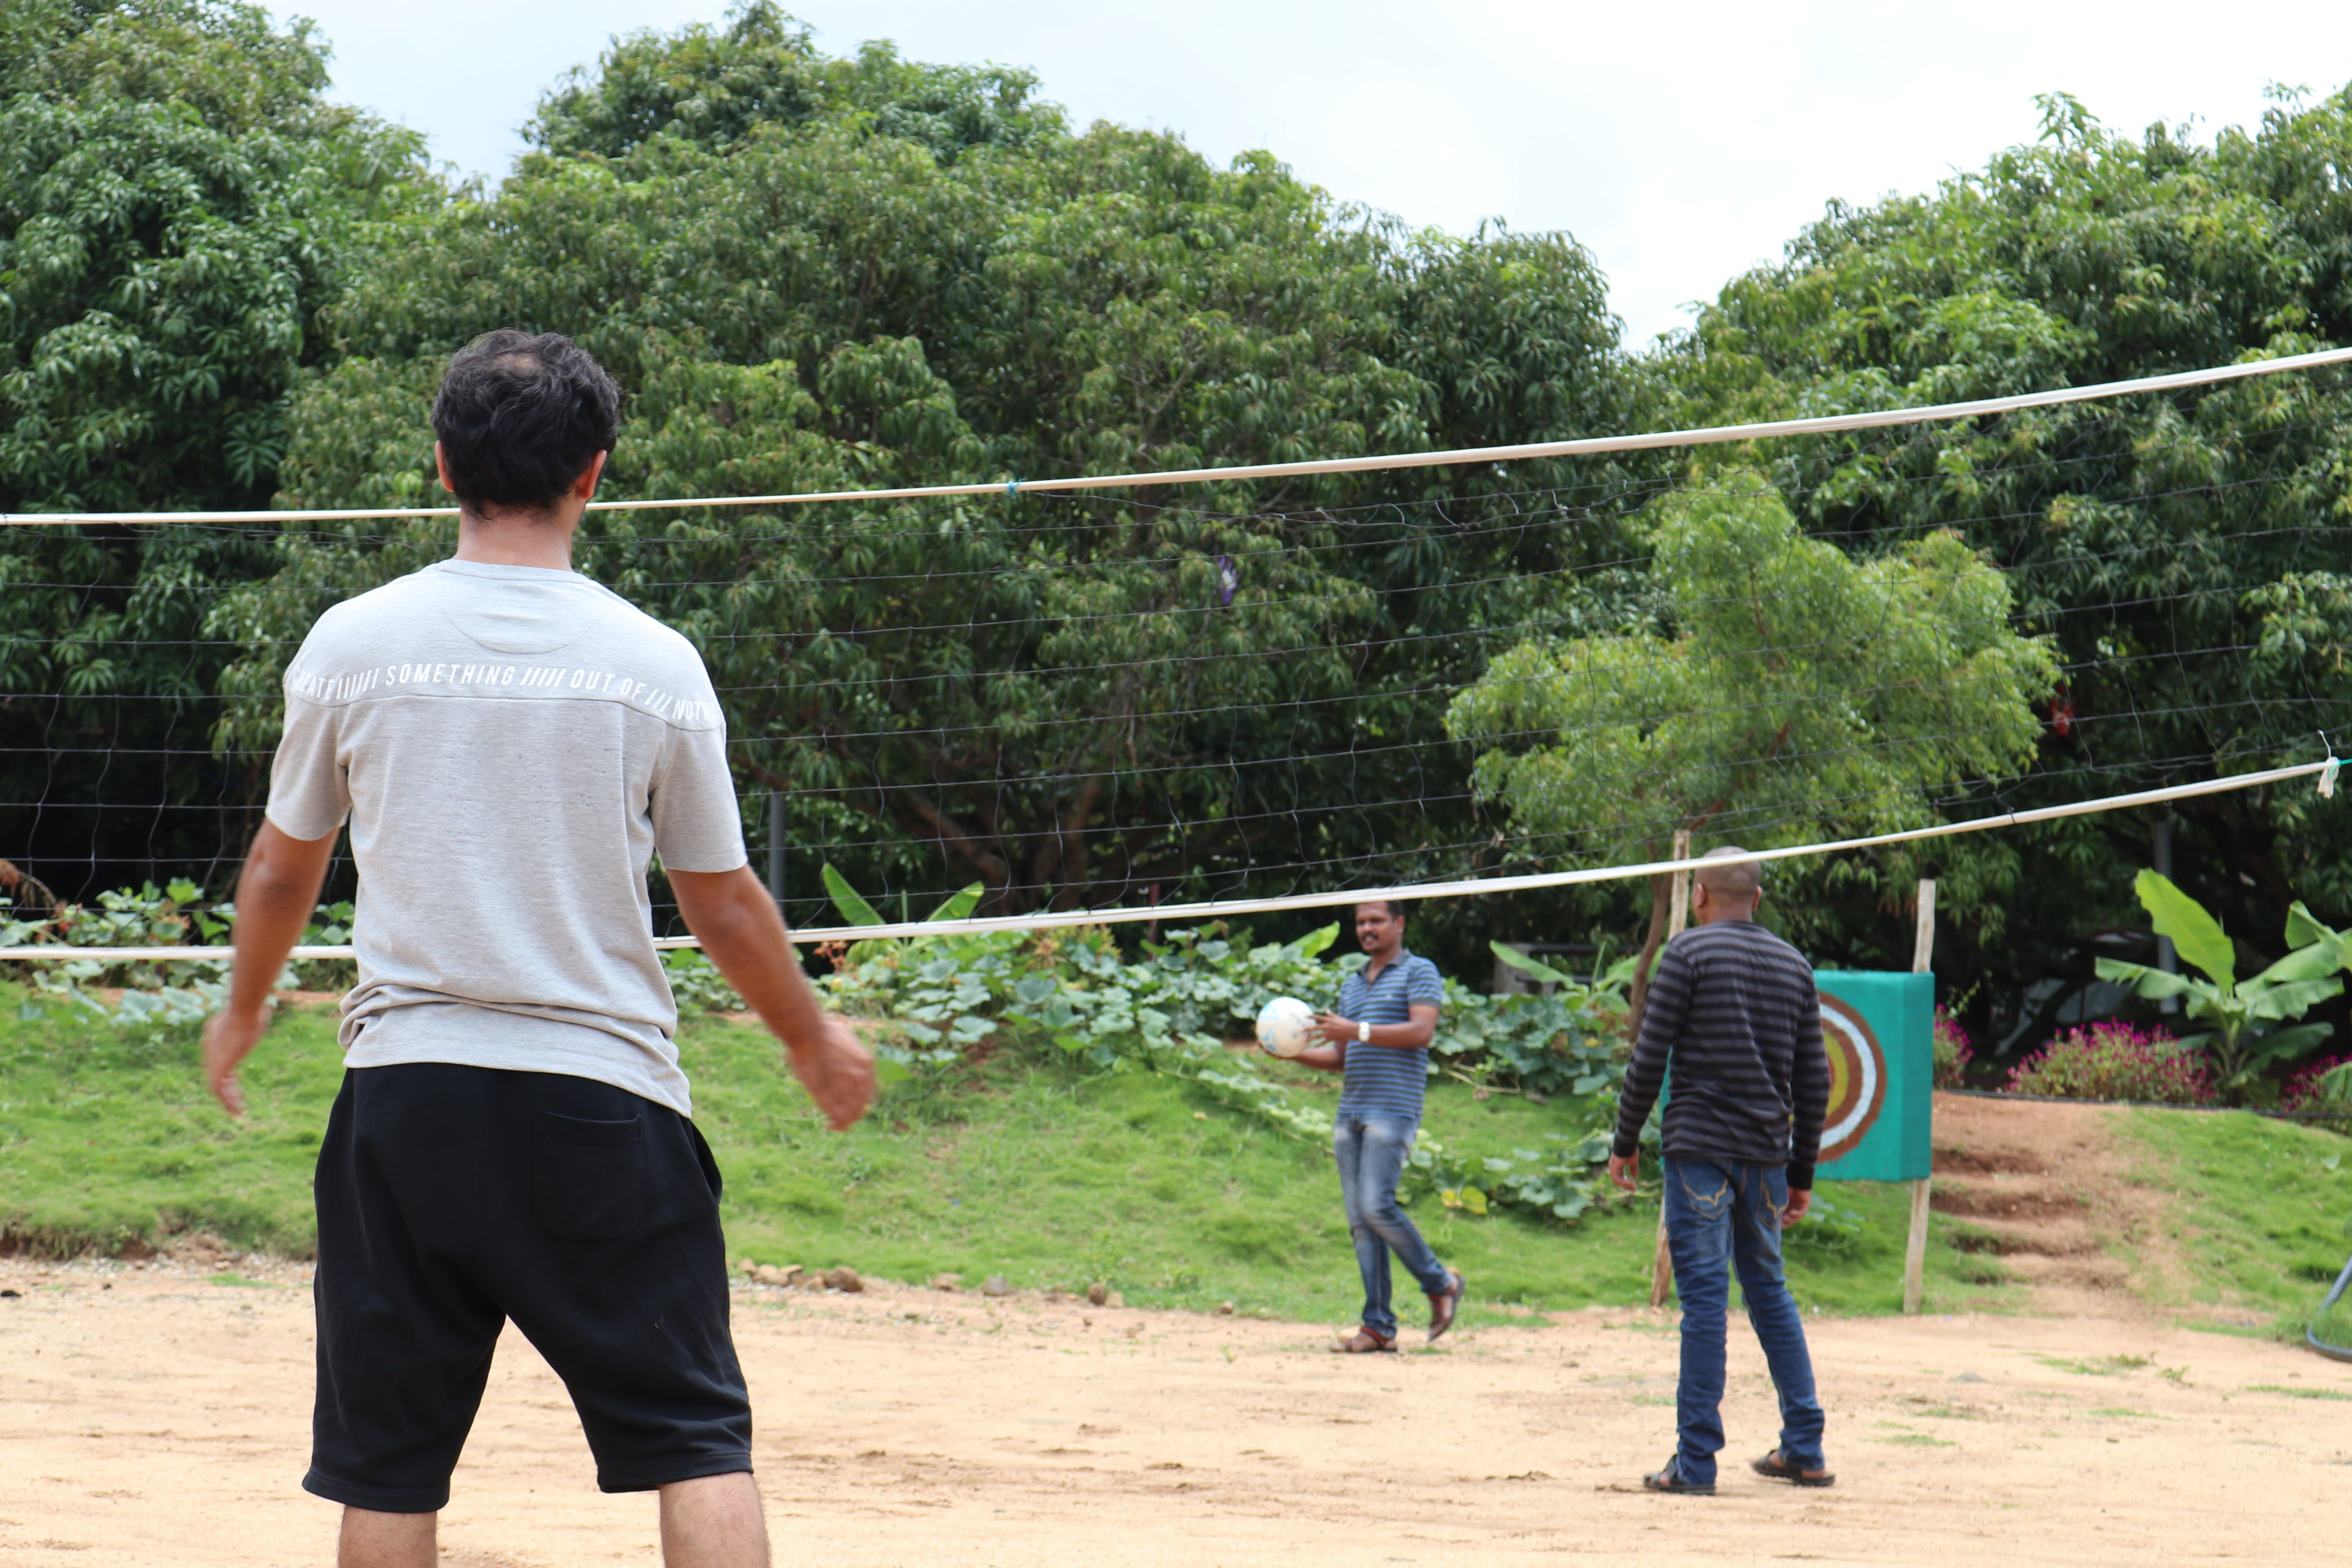 A game of VolleyBall